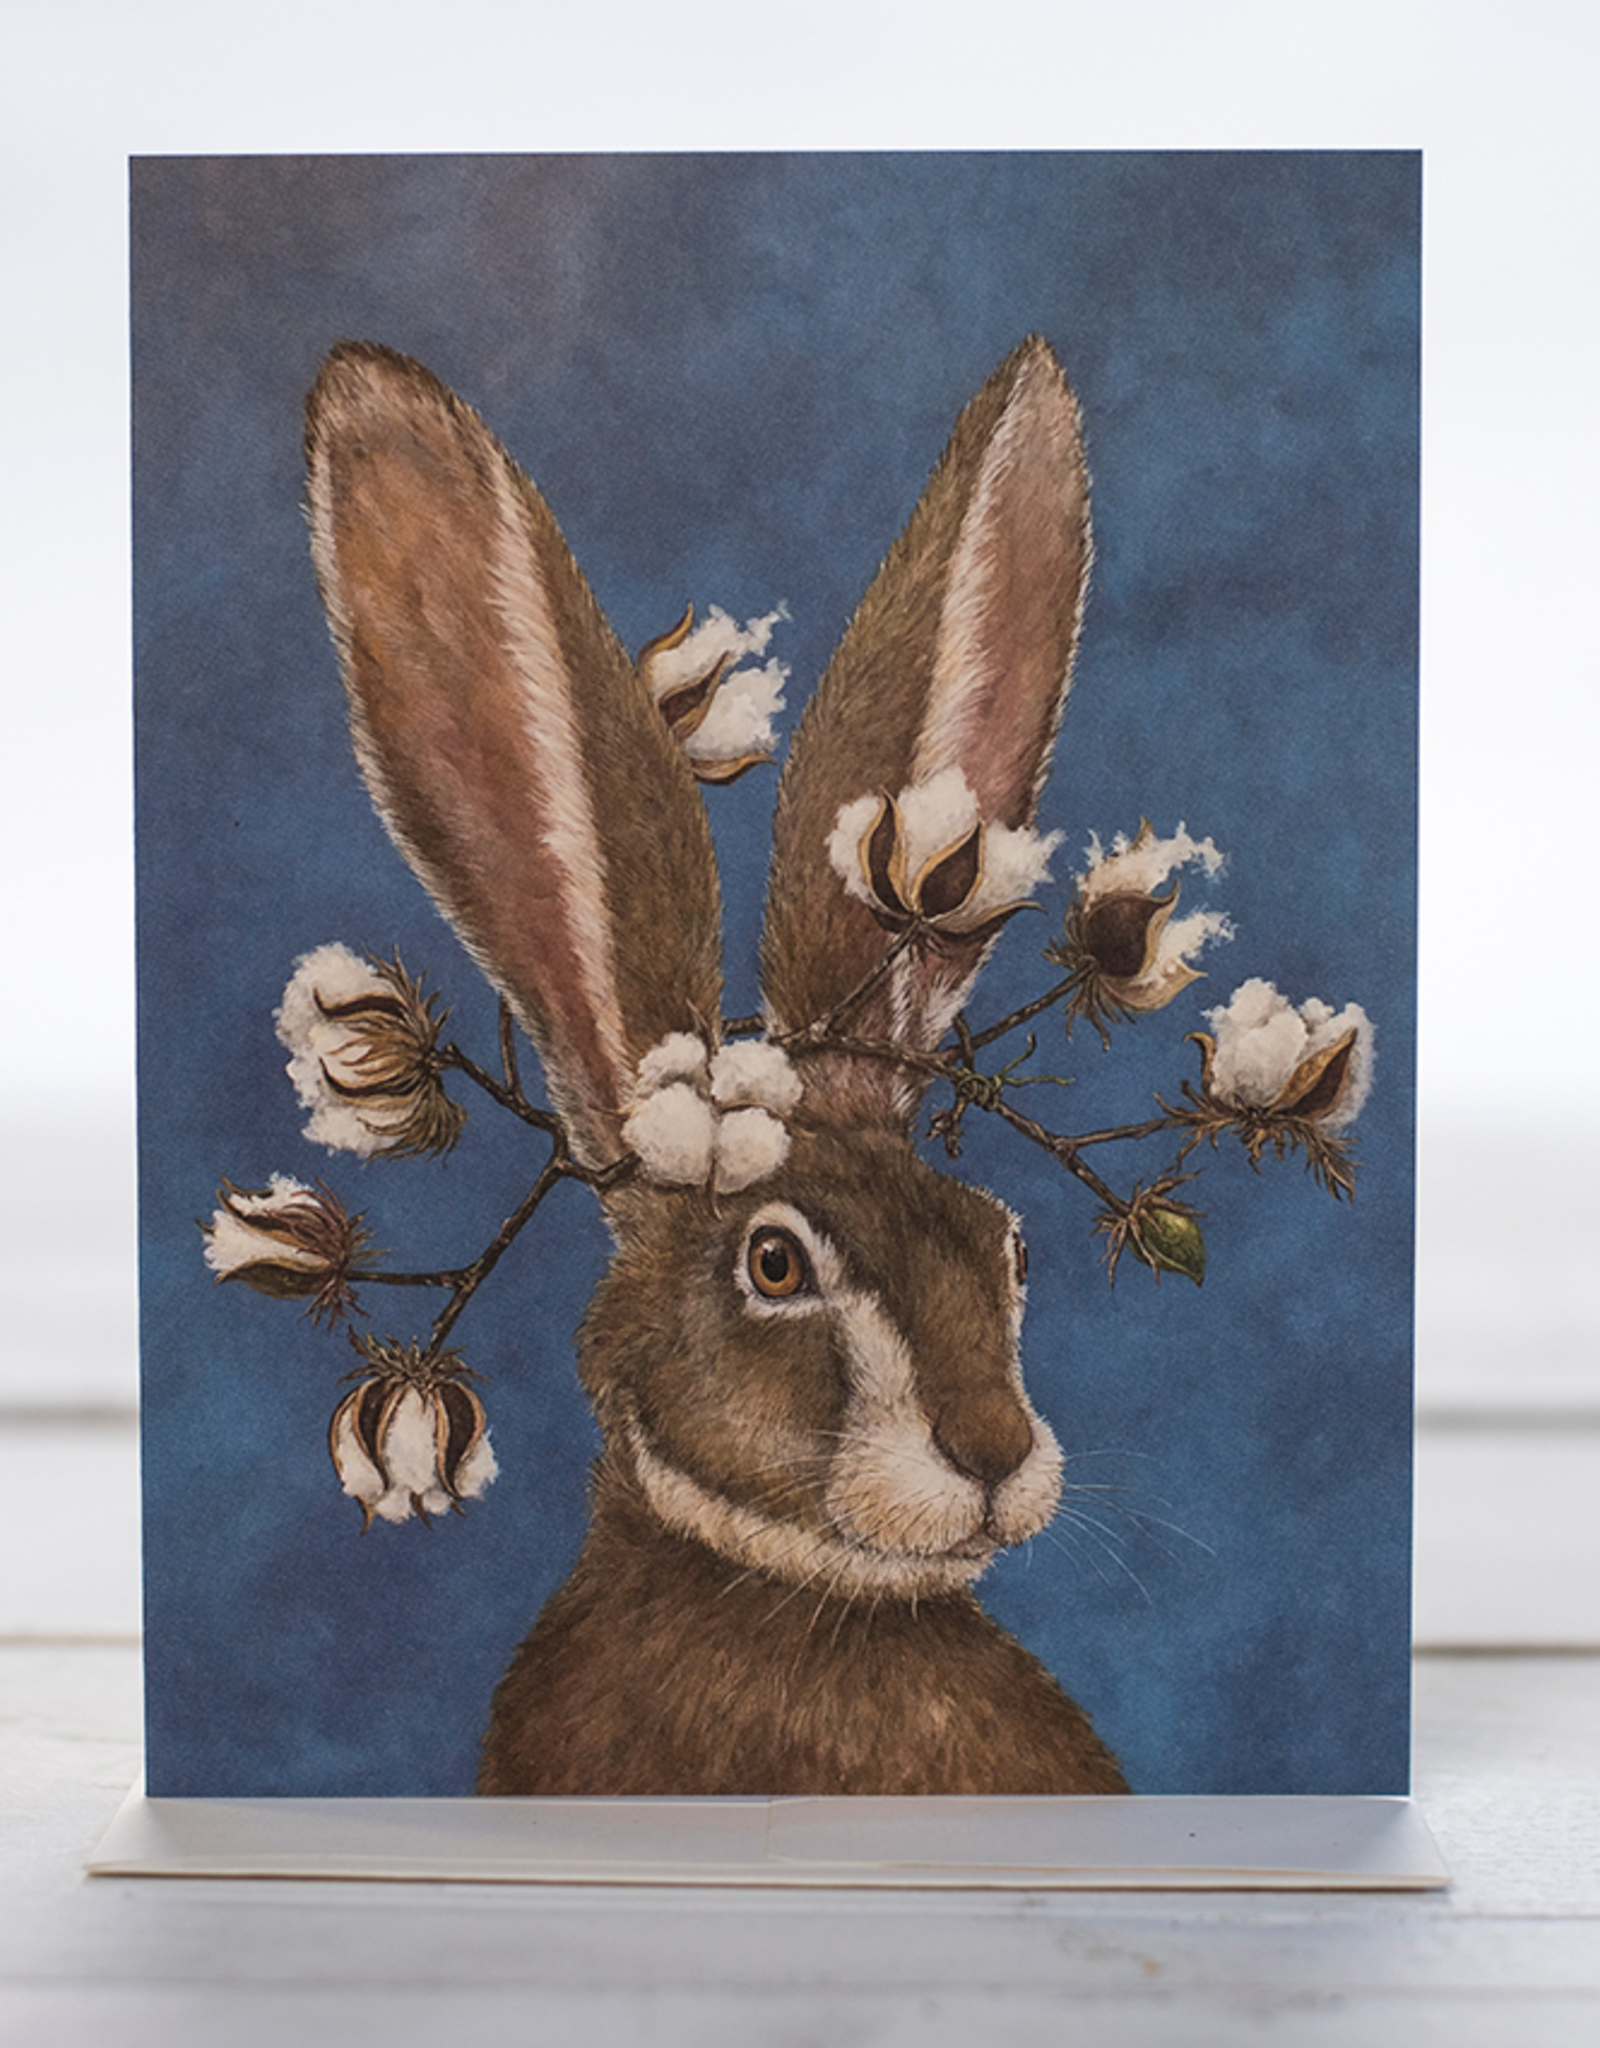 New Card - Bunny With Cotton